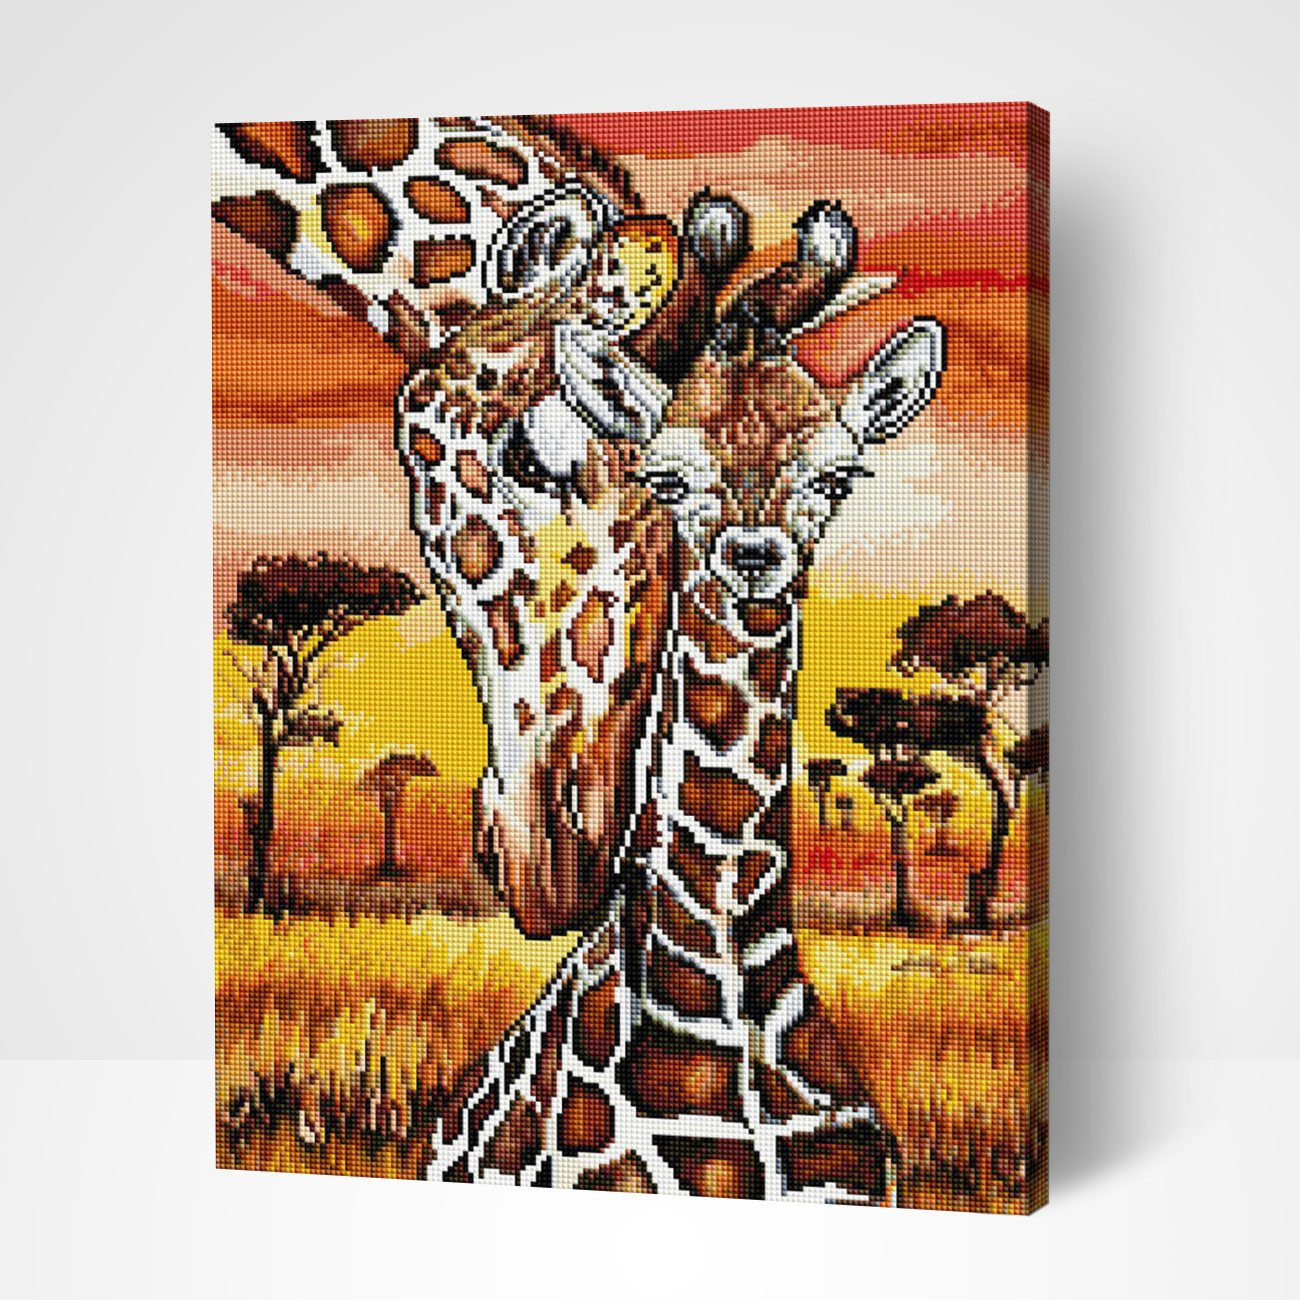 Mother's love. Giraffes - Diamond Painting